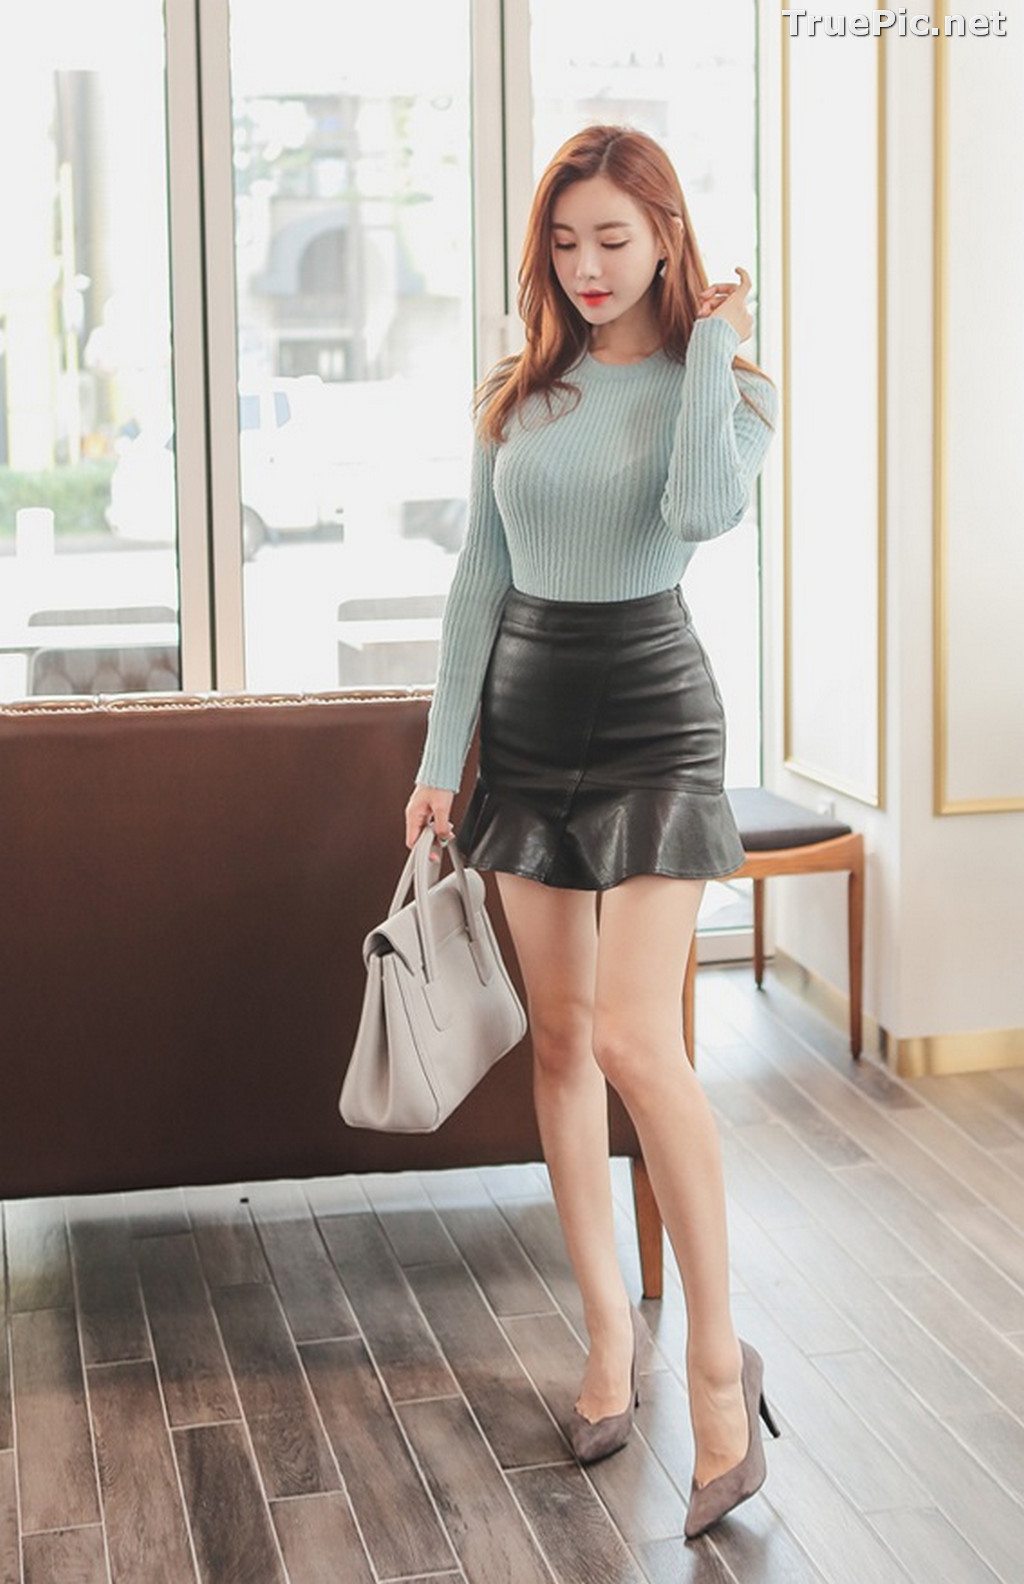 Image Korean Fashion Model – Hyemi – Office Dress Collection #3 - TruePic.net - Picture-6